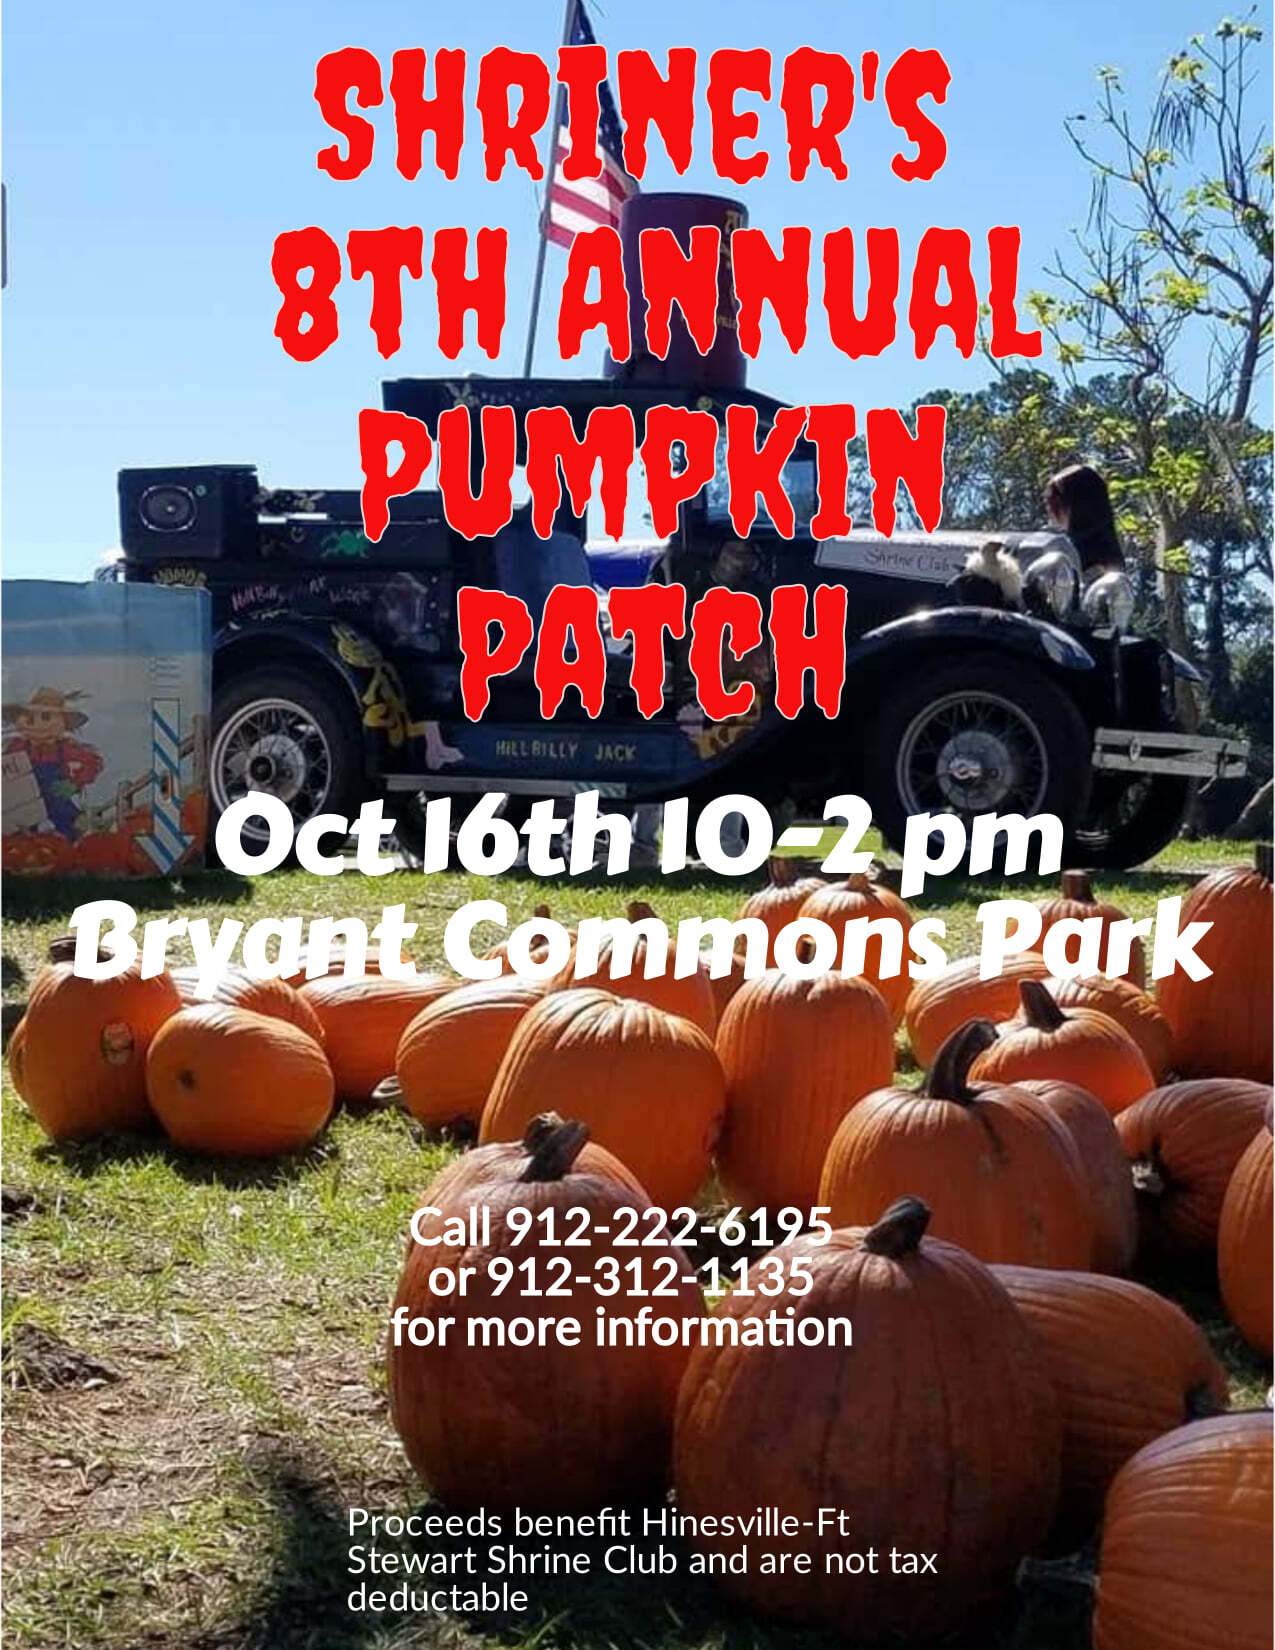 Shriner's 8th Annual Pumkin Patch